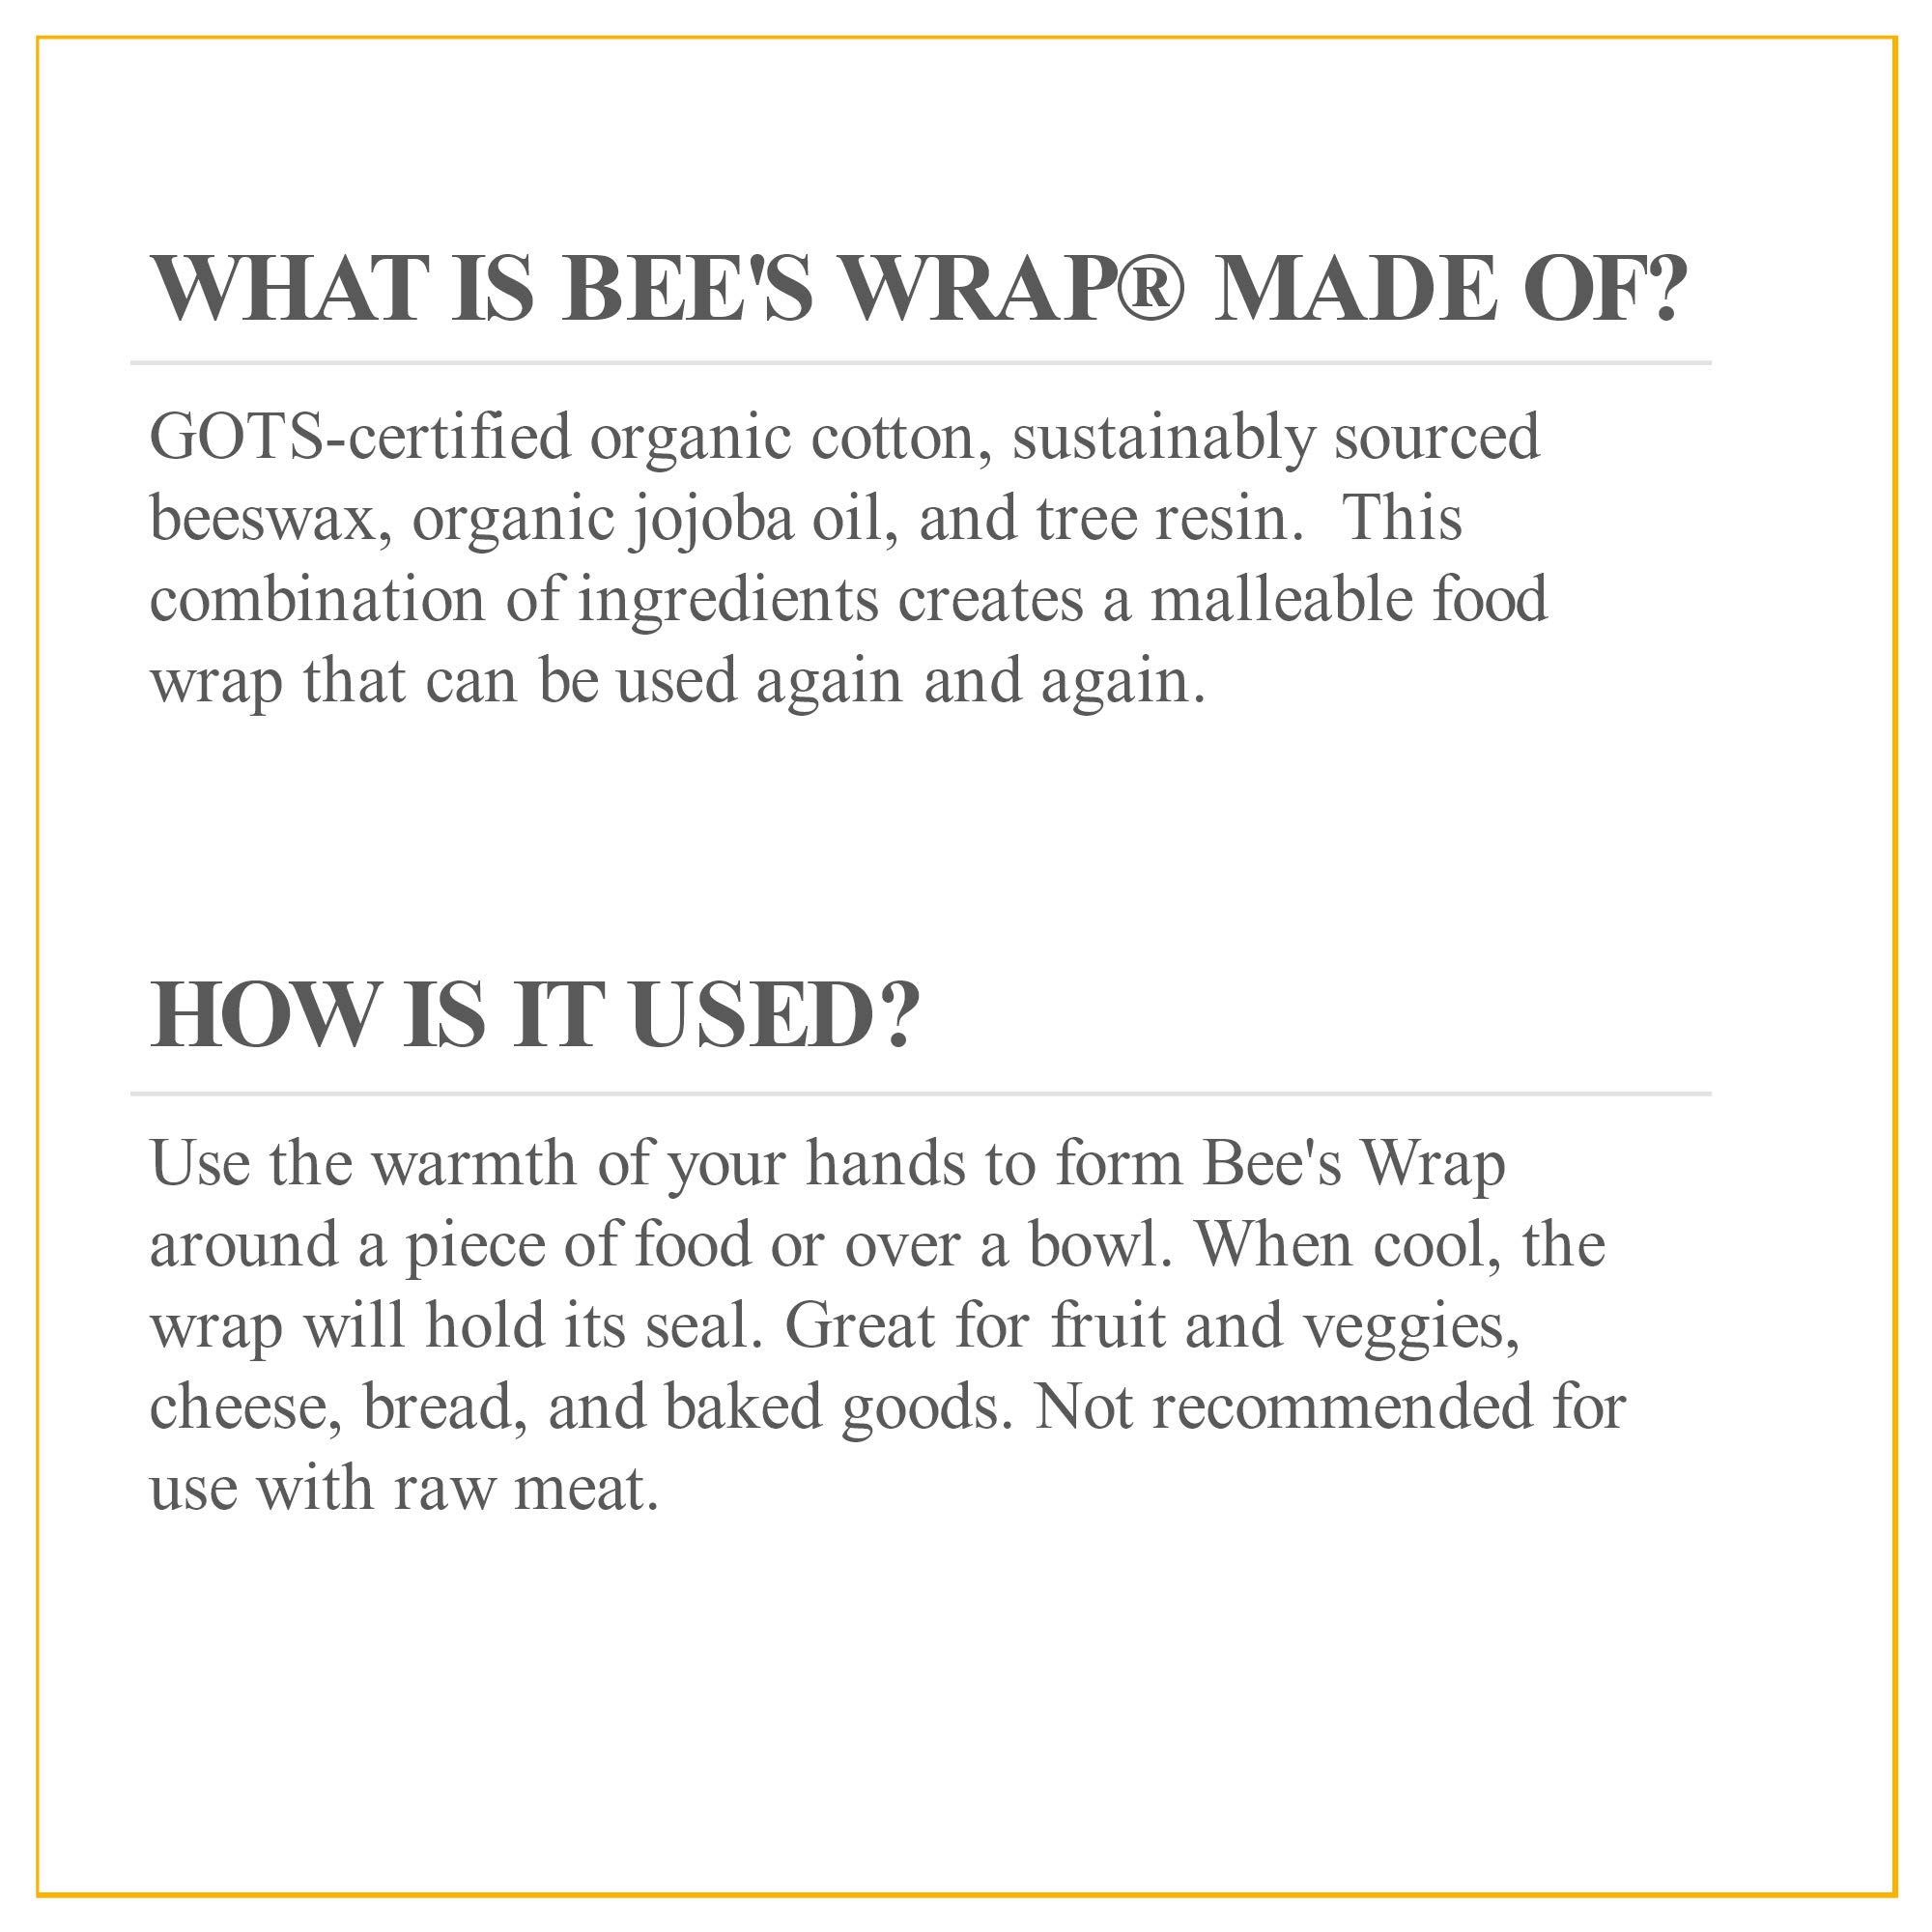 Bee's Wrap Assorted 3 Pack, Eco Friendly Reusable Food Wraps, Sustainable Plastic Free Food Storage, Honeycomb Print - 1 Small, 1 Medium, 1 Large by Bee's Wrap (Image #5)